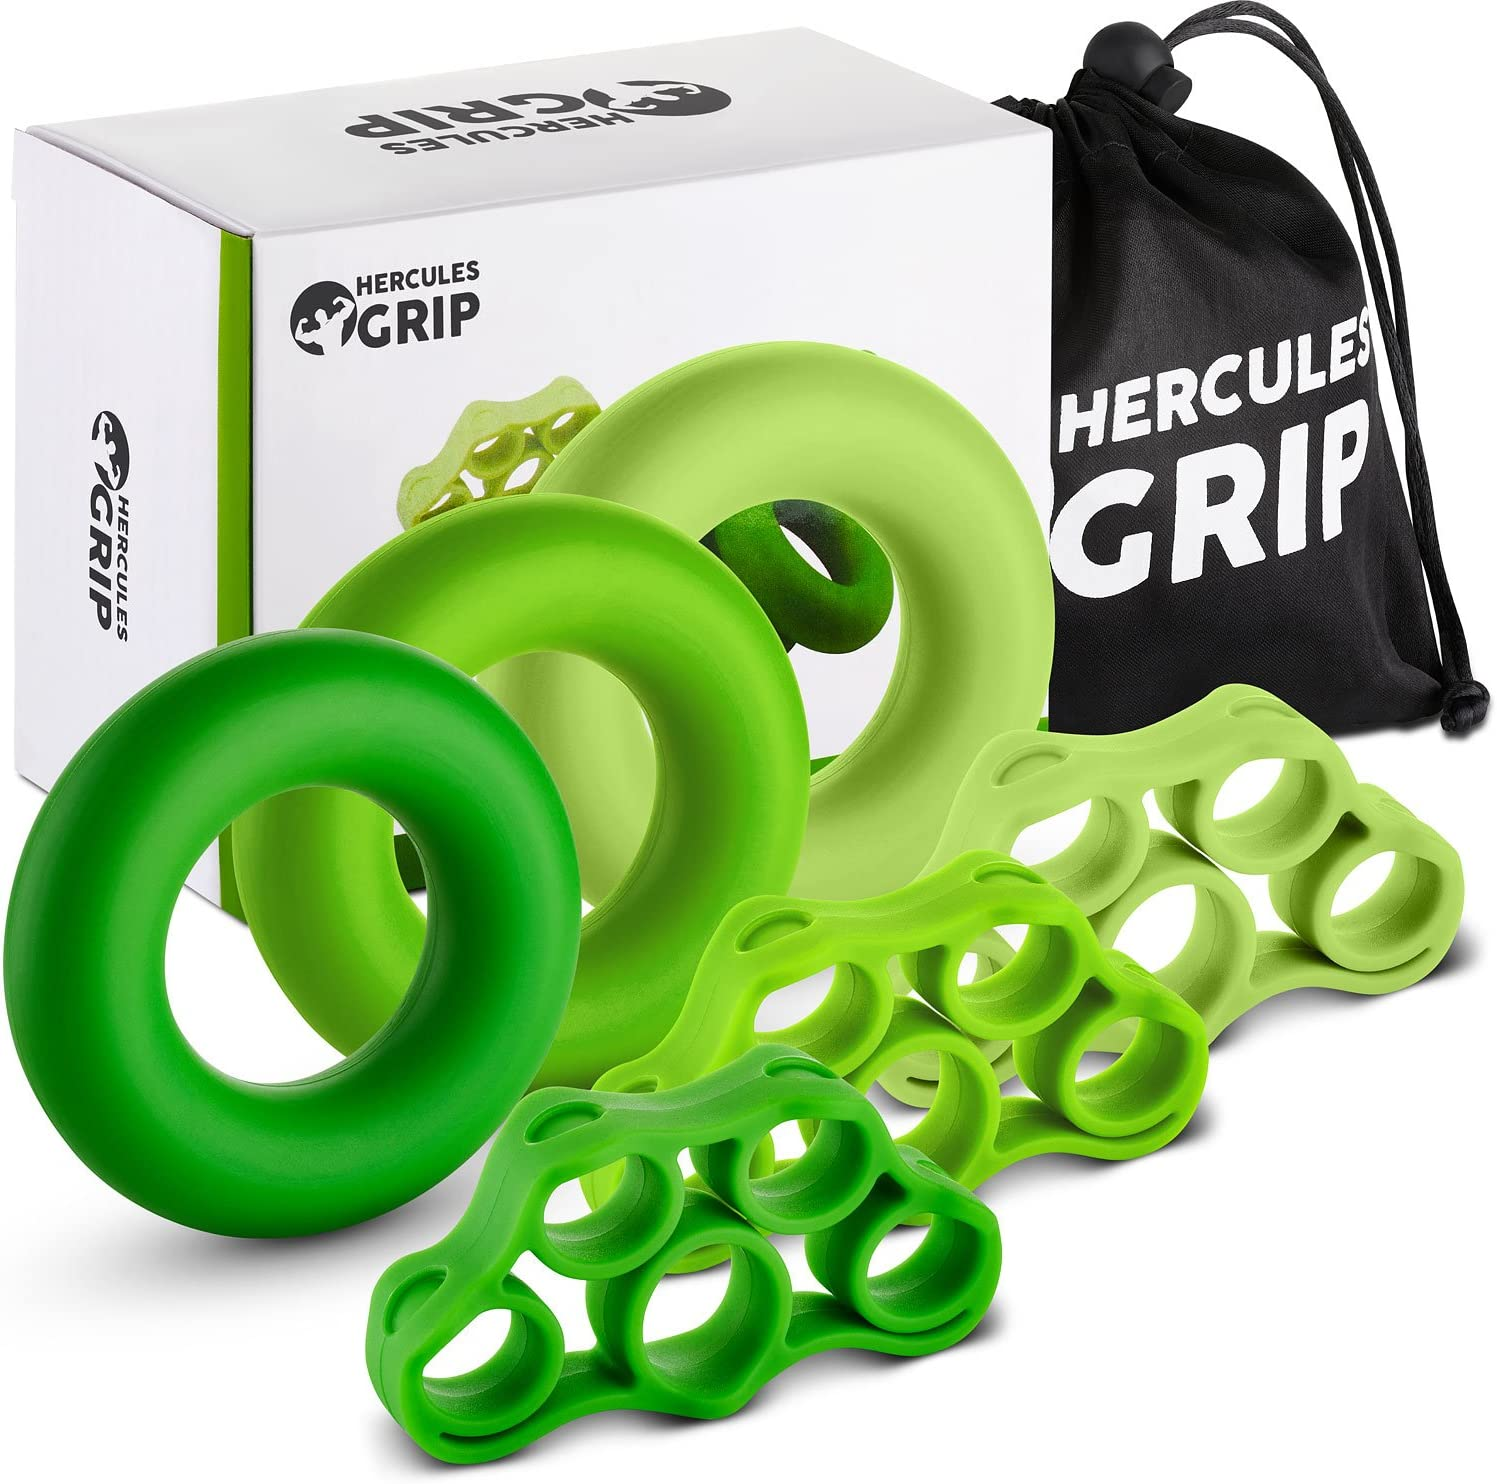 HerculesGrip Hand Grip Strengthener Forearm Workout Kit – 6 Pack -Grip Ring Finger Stretcher -3 Resistance Levels – Easy, Medium, Heavy – Increase Strength, Improve Dexterity Speed Up Recovery